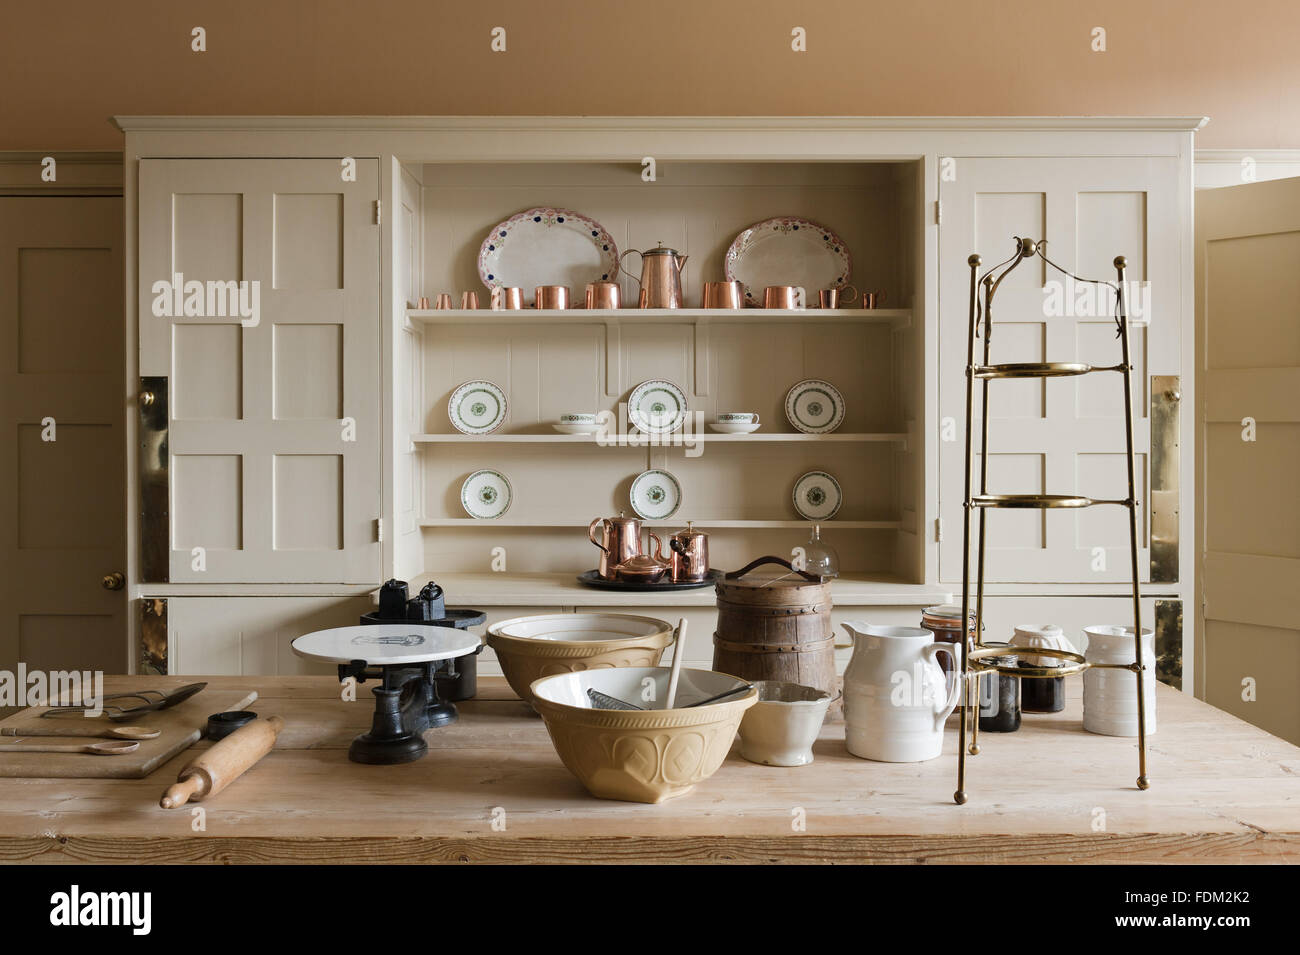 The Kitchen With The Philip Webb Dresser At Standen, West Sussex.   Stock  Image